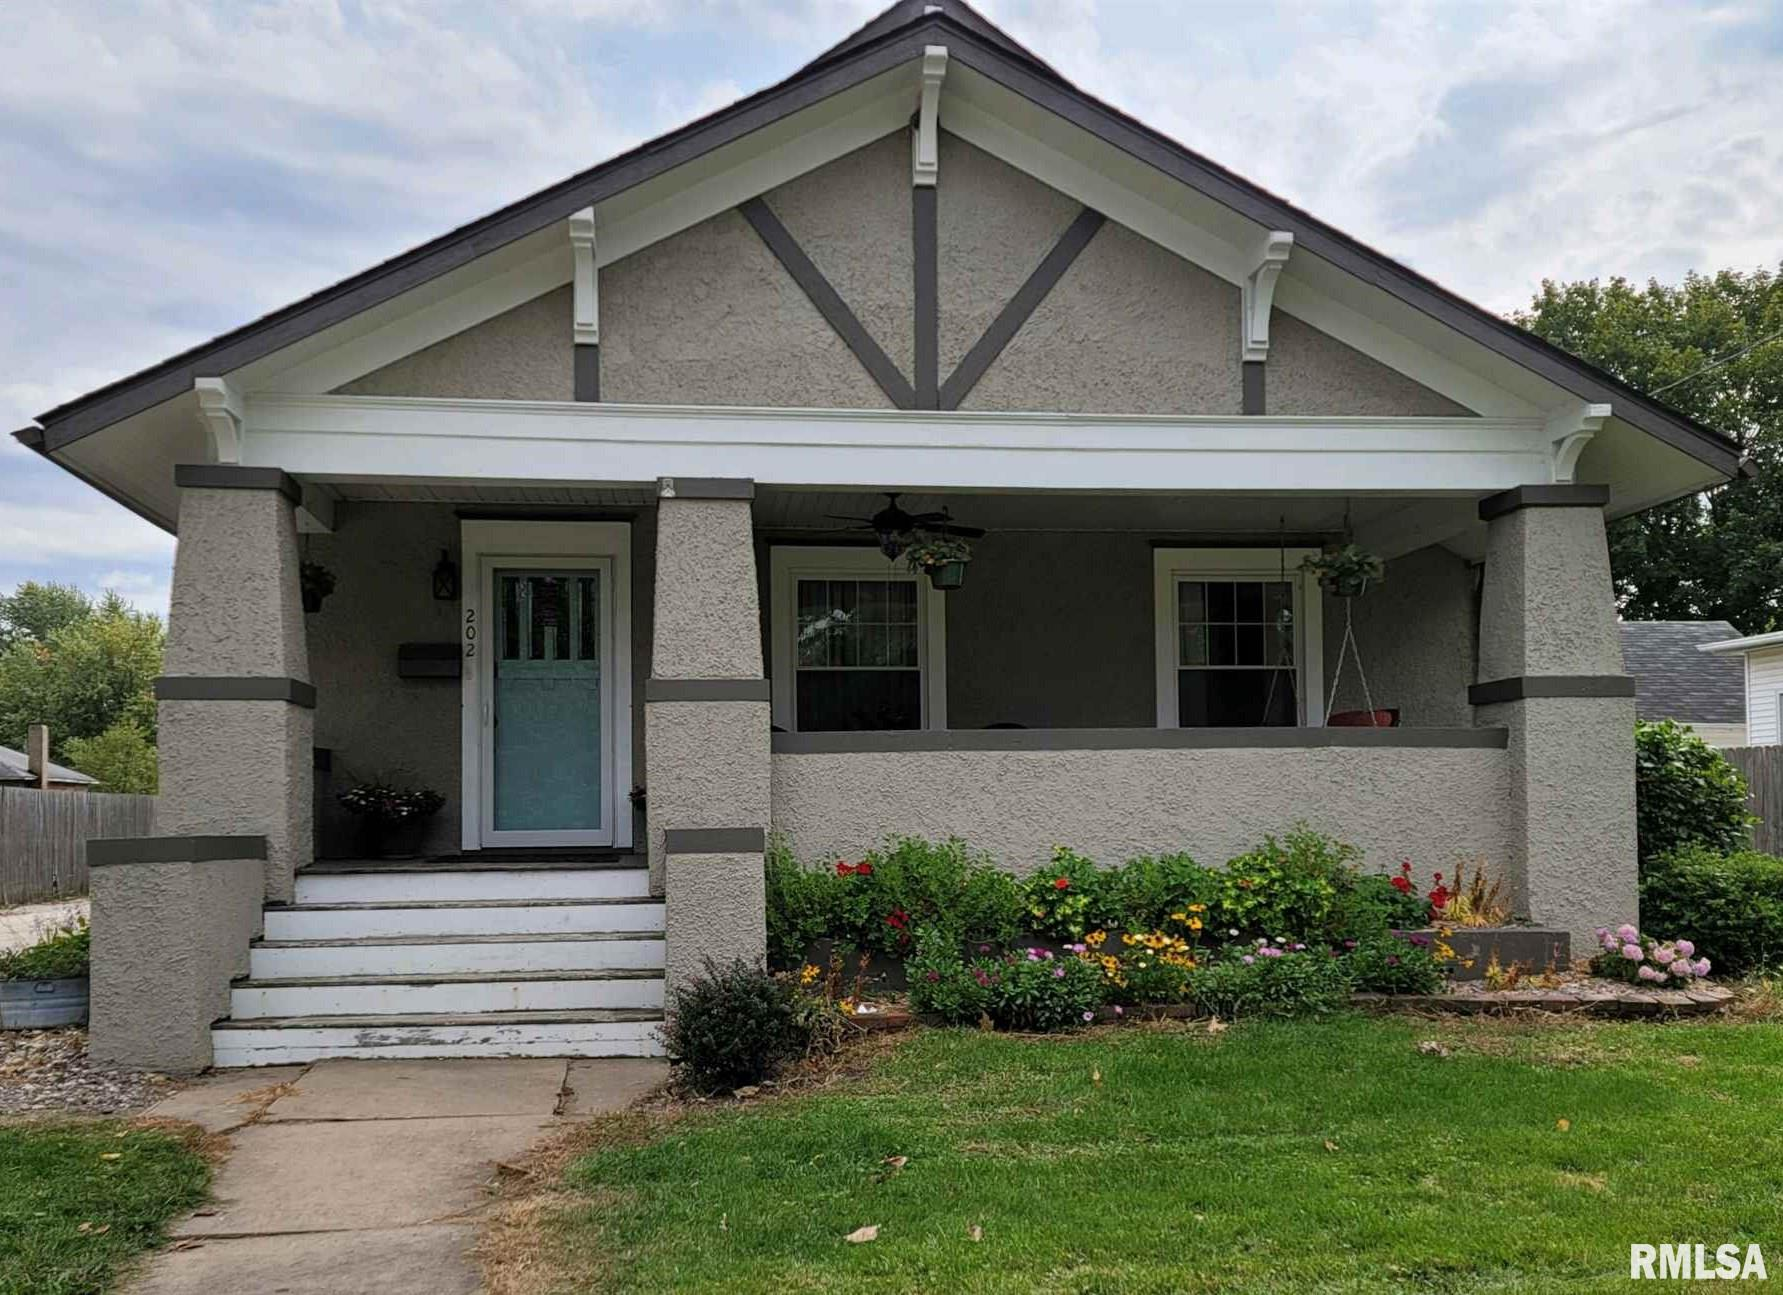 202 E COURT Property Photo - Cambridge, IL real estate listing